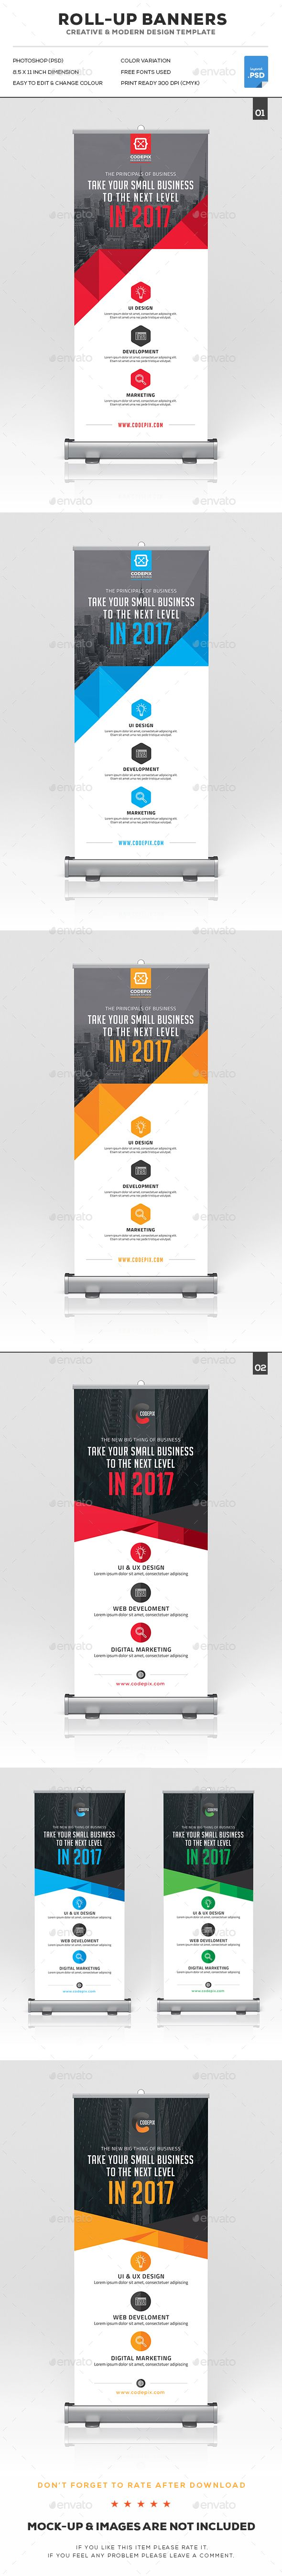 Corporate Roll-Up Banner Bundle Templates PSD. Download here: http://graphicriver.net/item/corporate-rollup-banner-bundle/16918293?ref=ksioks